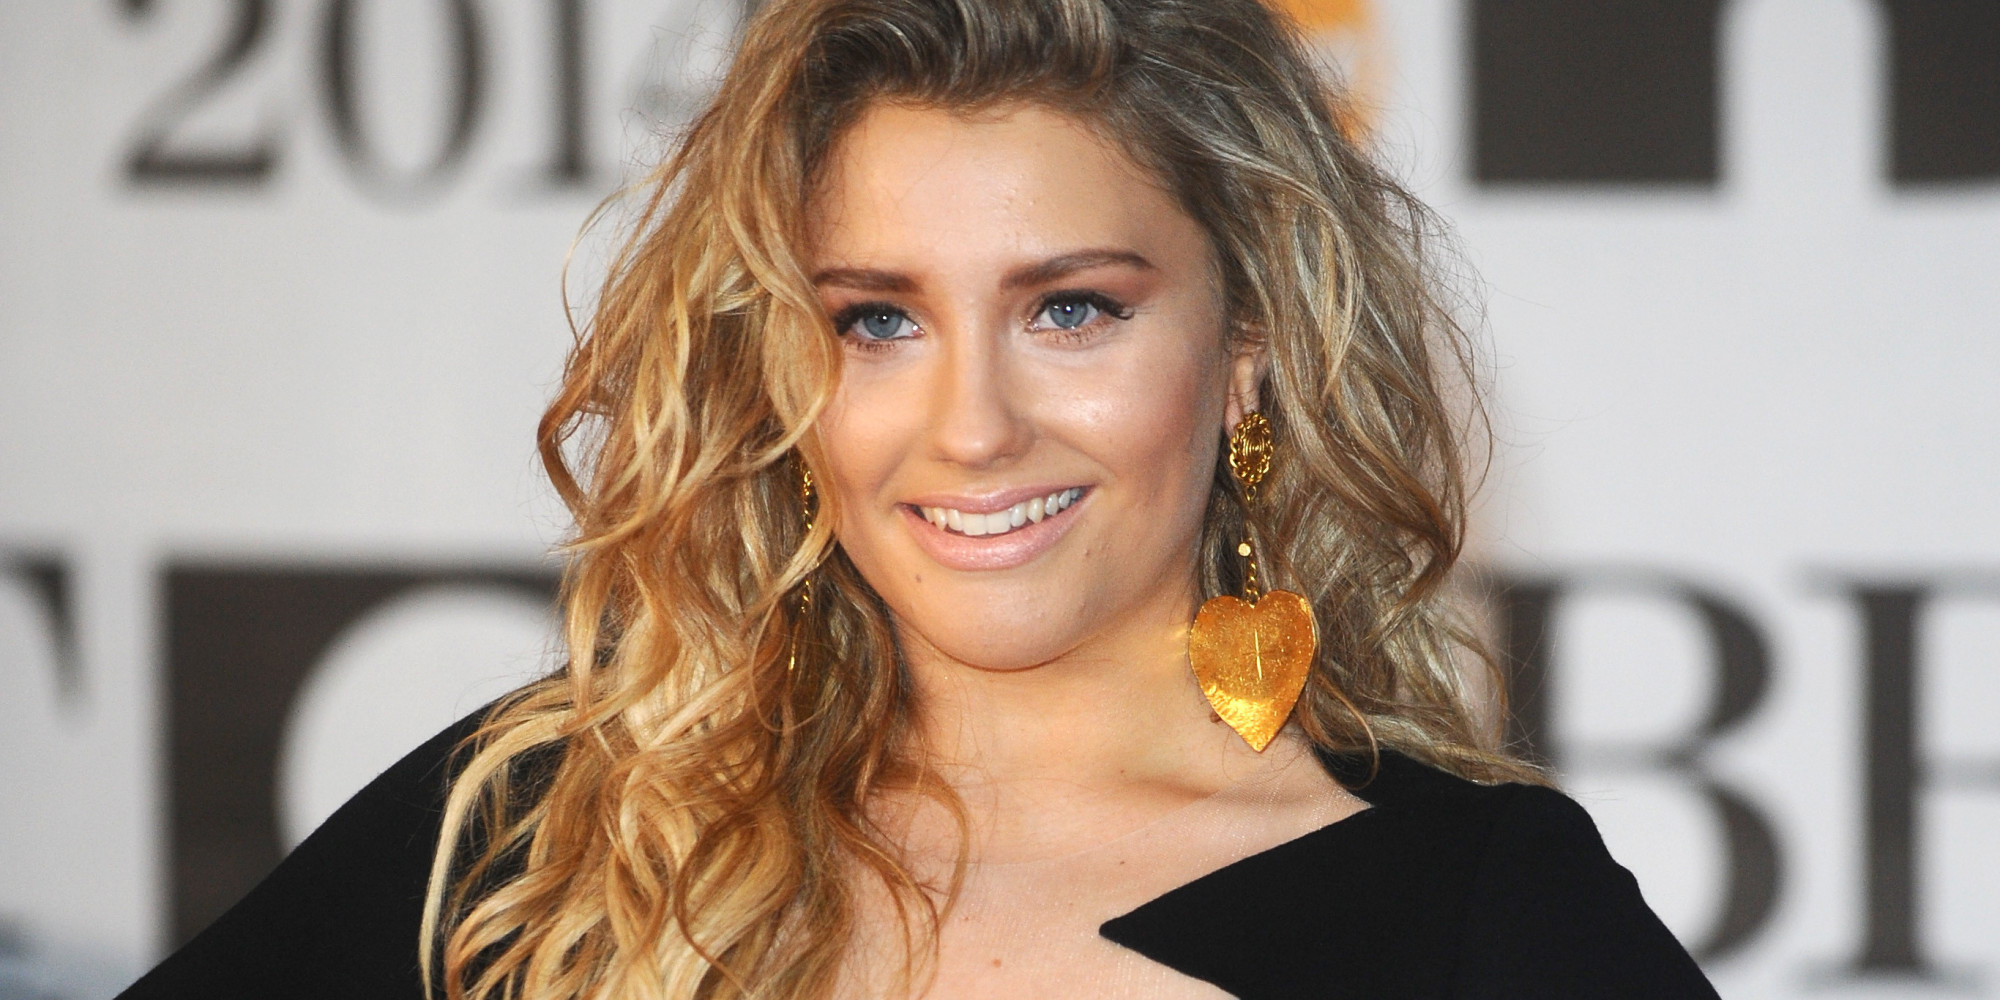 The 21-year old daughter of father Sean and mother Michelle, 162 cm tall Ella Henderson in 2017 photo